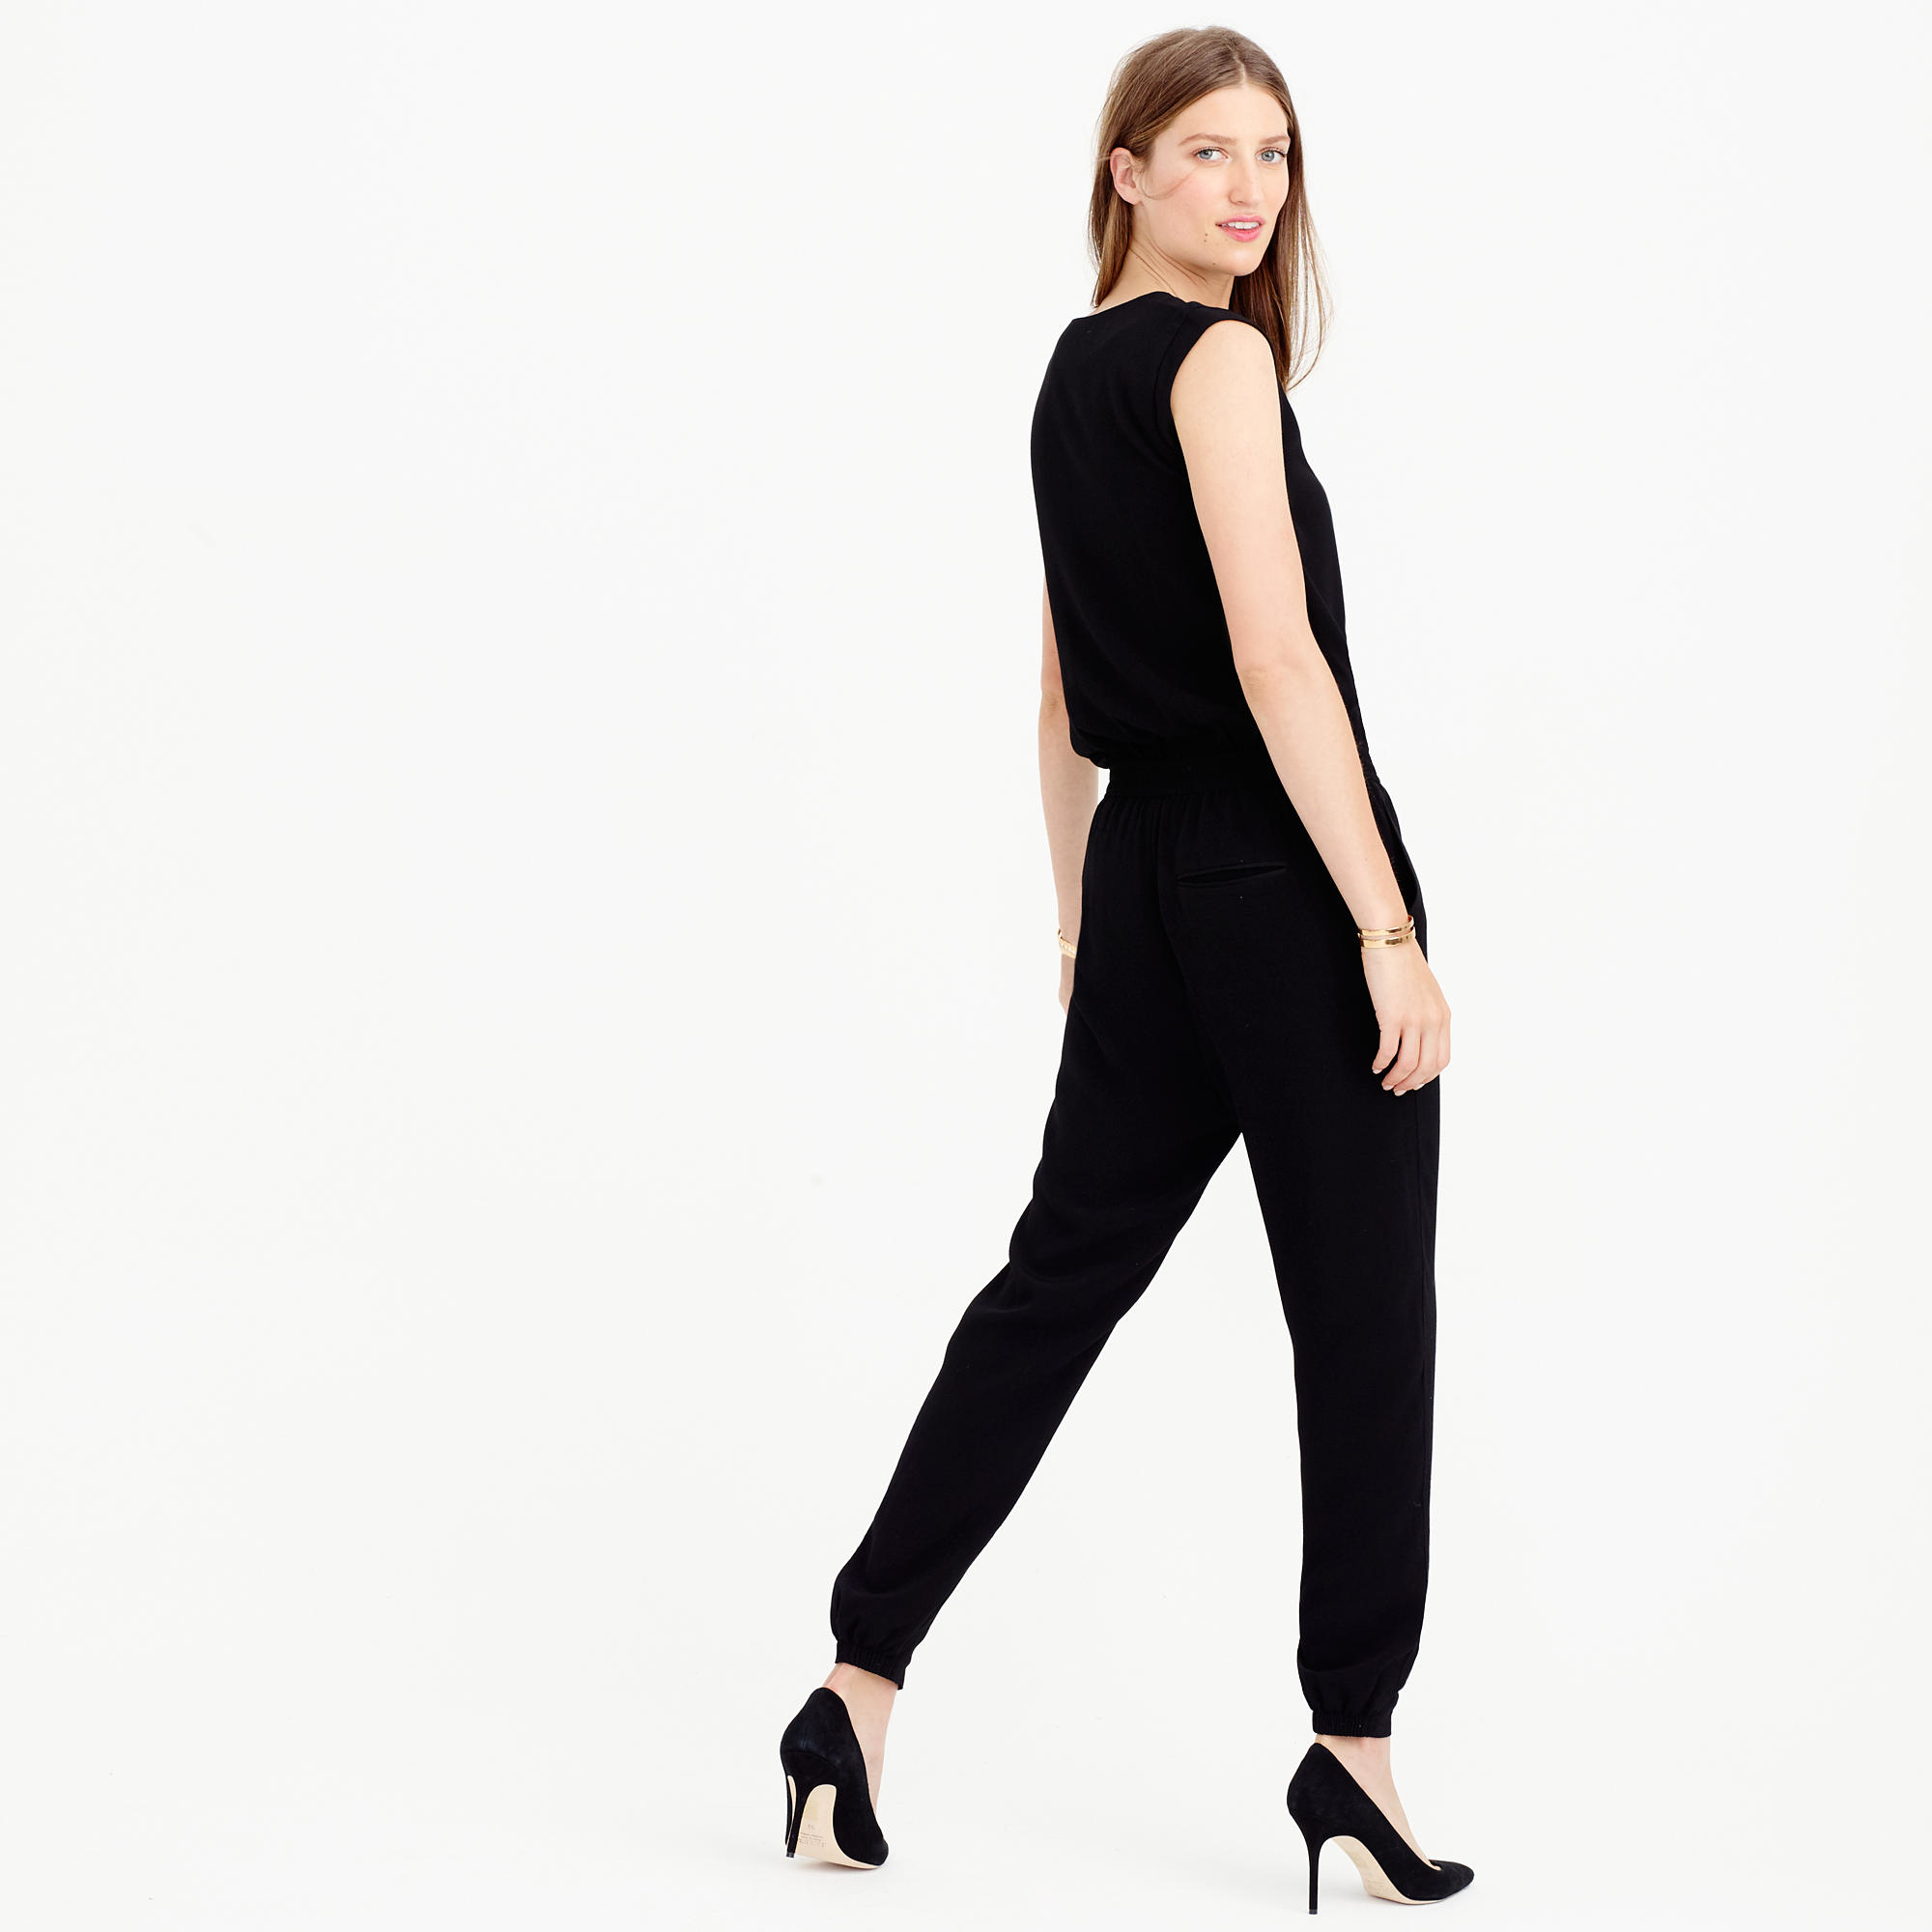 a6135badf70d J.Crew Asymmetrical Zip Jumpsuit in Black - Lyst